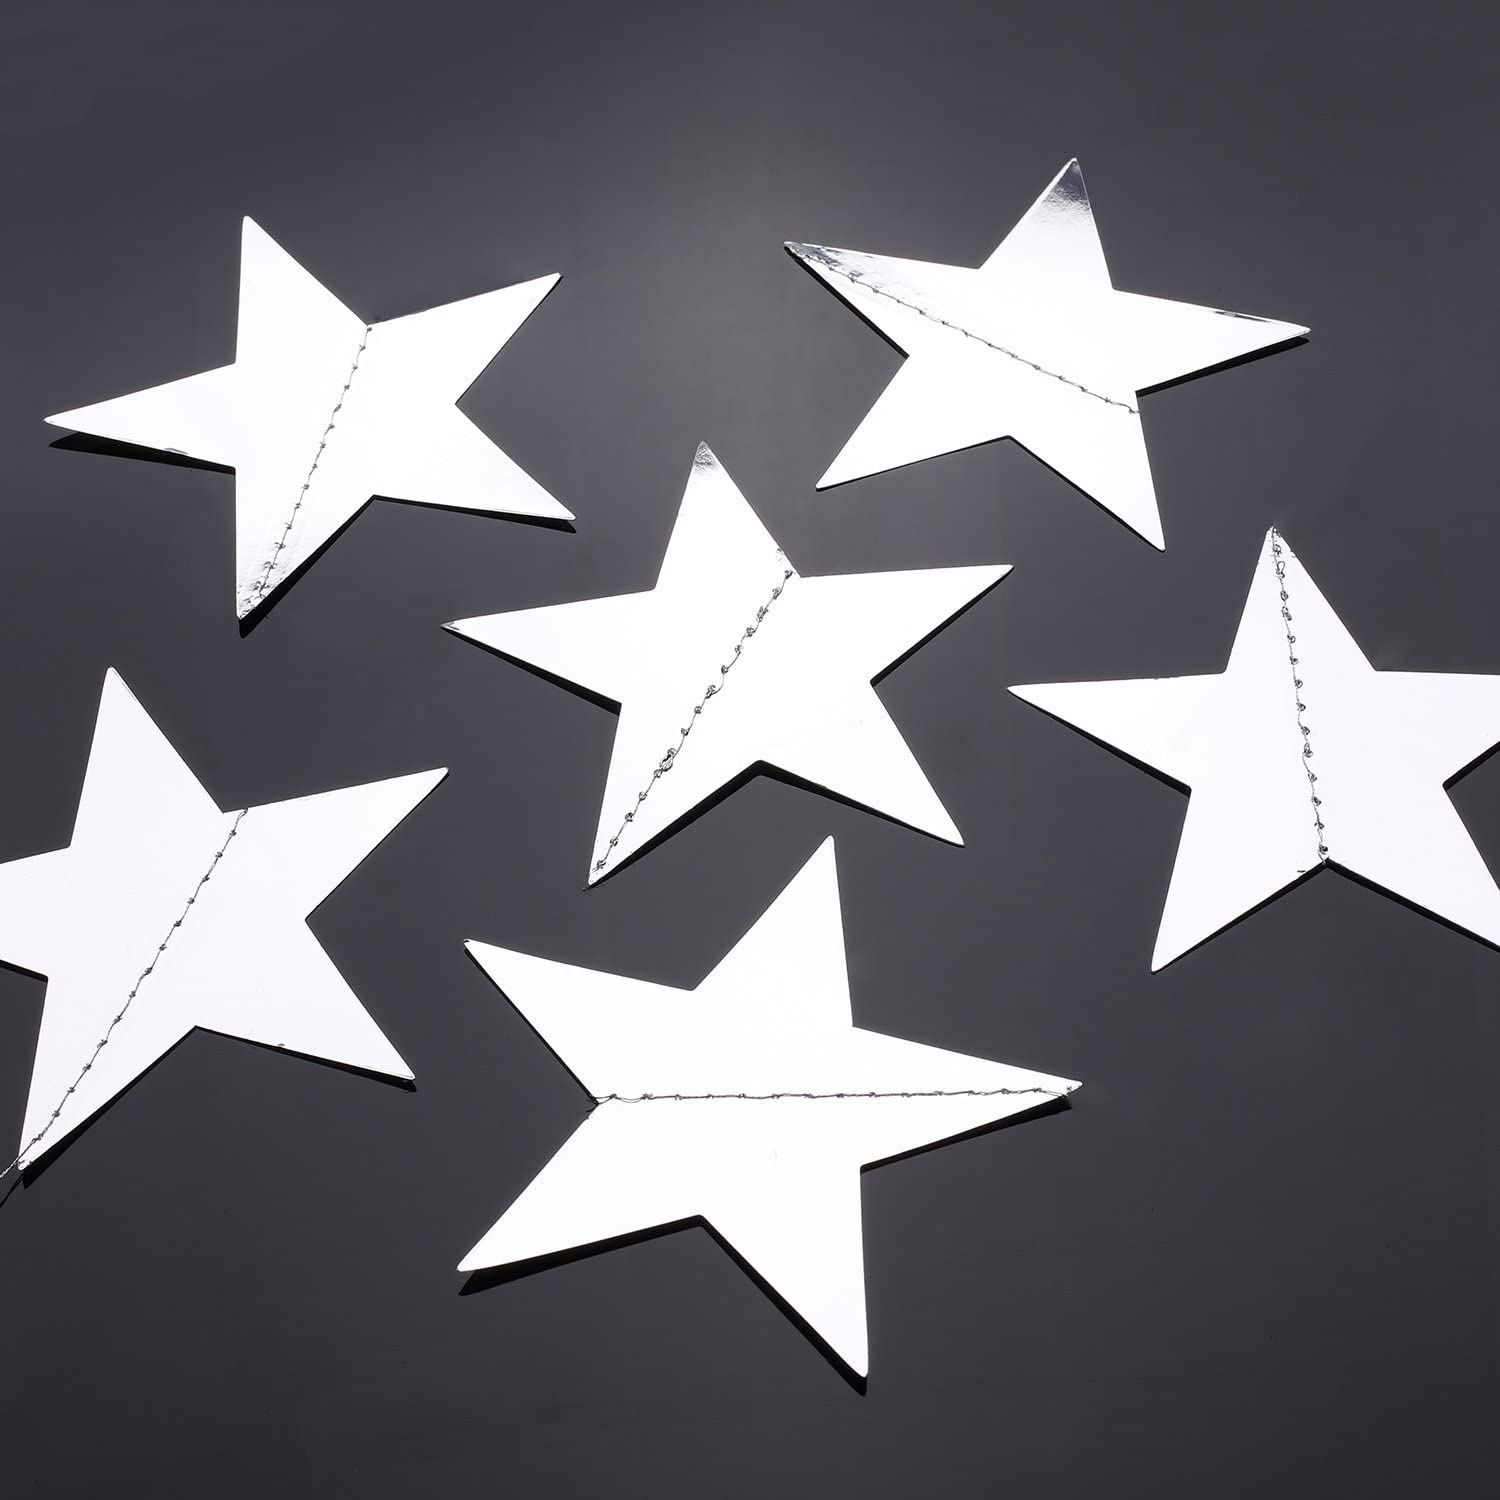 Gold Whaline 52 Feet Reflective Star Paper Garland Sparkling Star Bunting Banner for Wedding Birthday Party Holiday Decorations 2.75 Inches